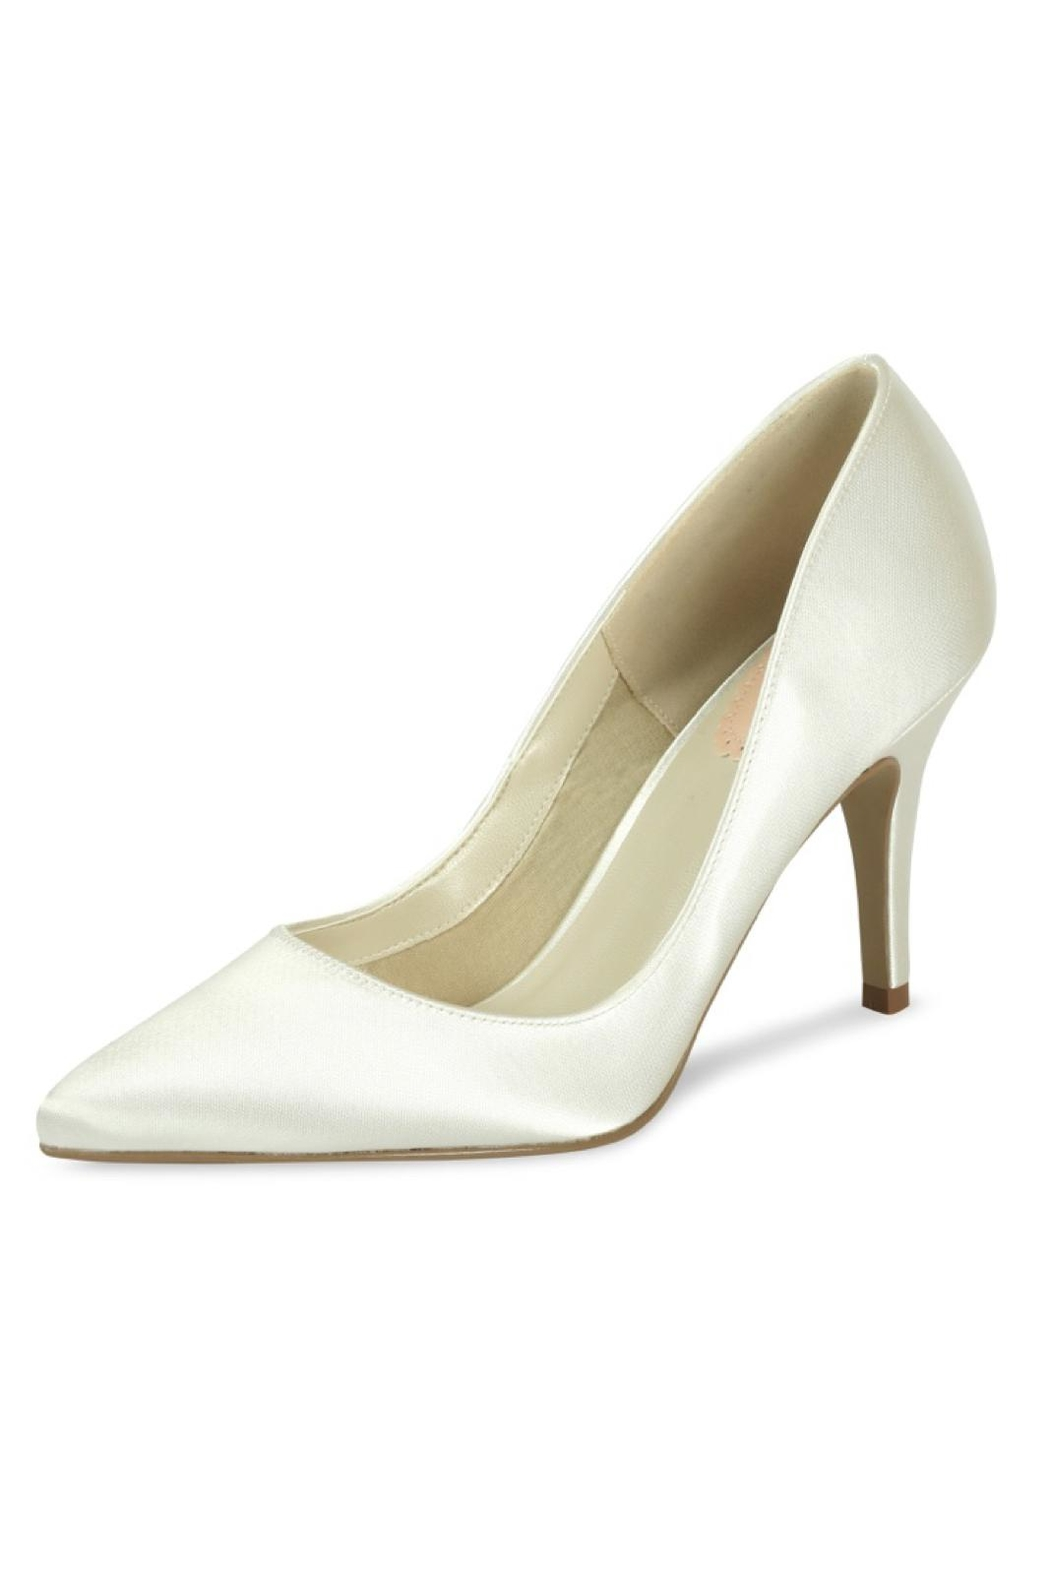 pink paradox London Flush Ivory Satin Shoes - Front Cropped Image